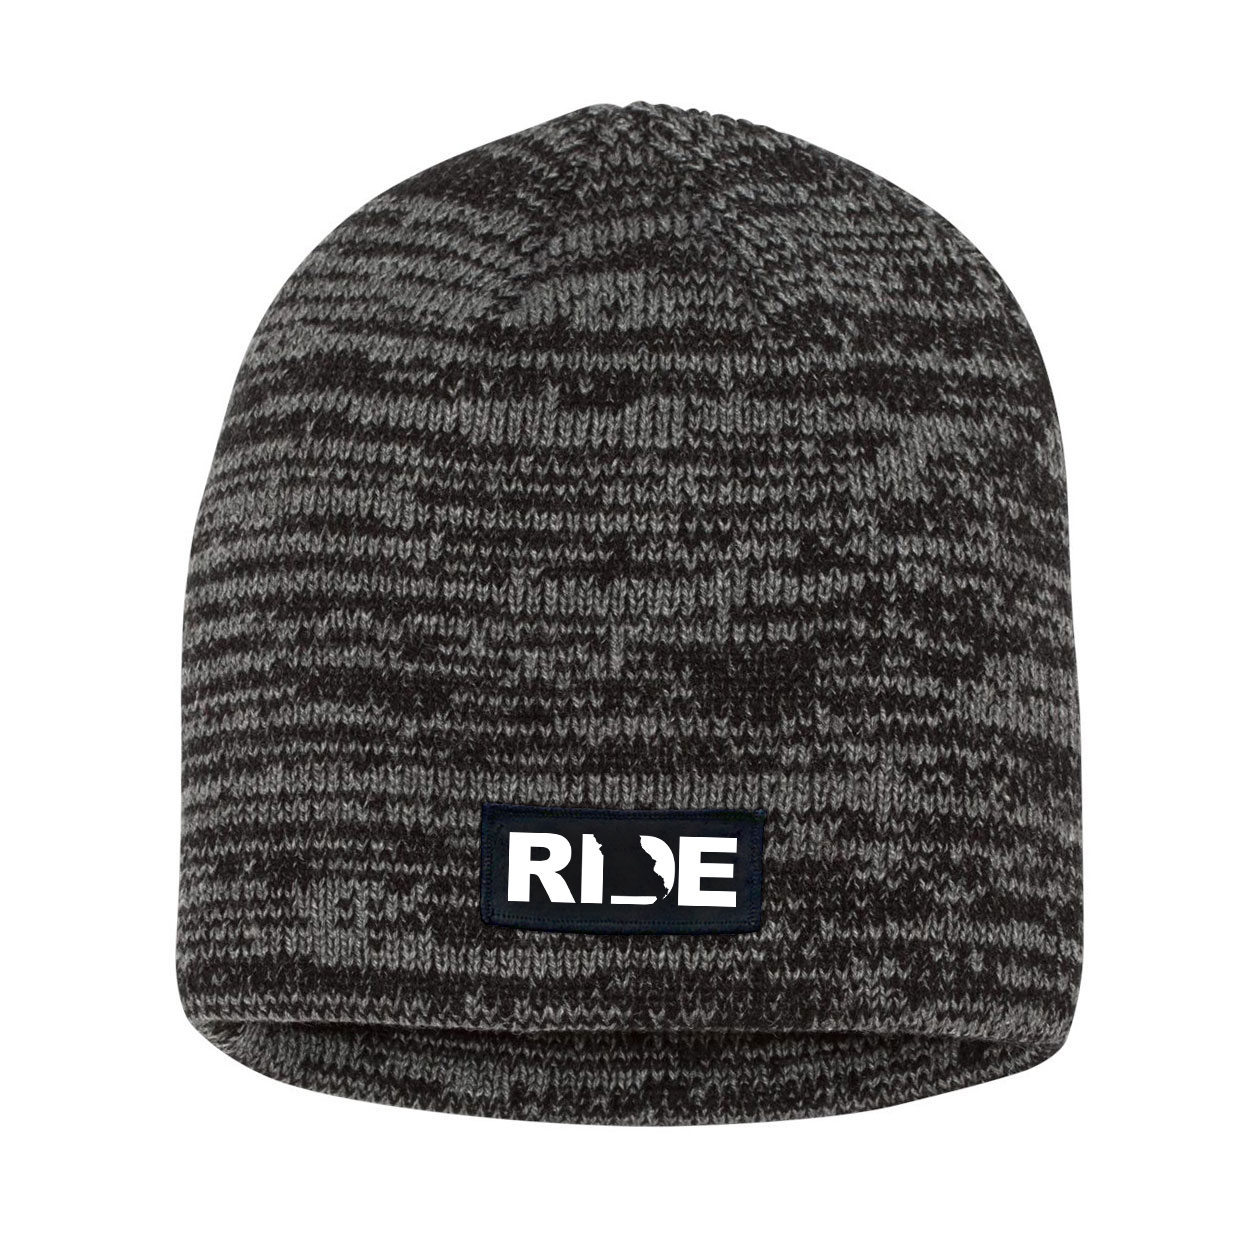 Ride Missouri Night Out Woven Patch Skully Marled Knit Beanie Black/Gray (White Logo)